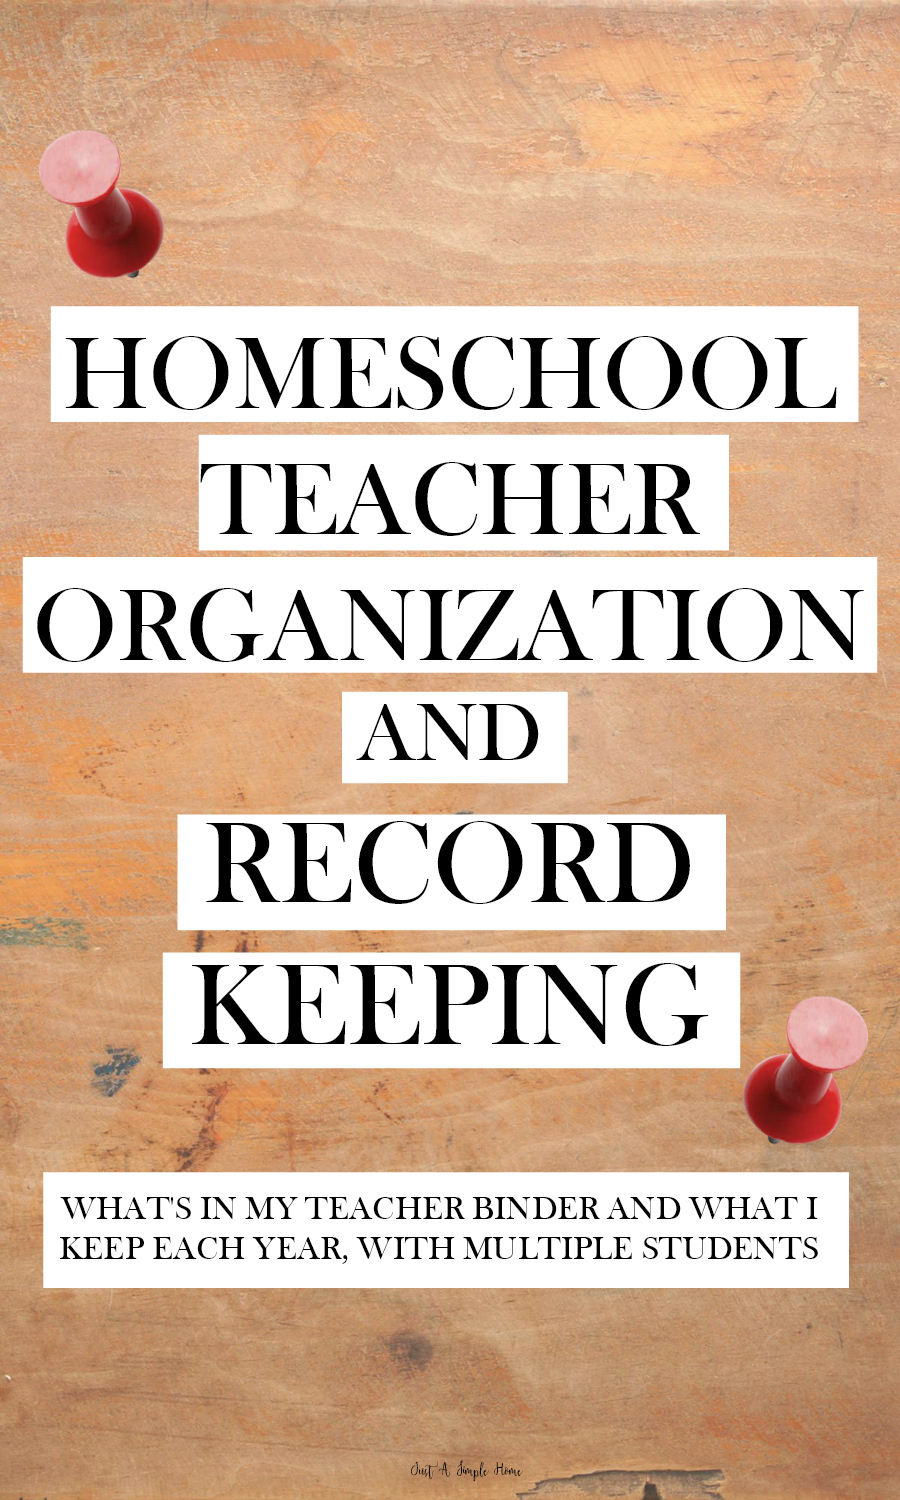 Homeschool Teacher Organization and Record Keeping - 10 Days of Homeschool Planning